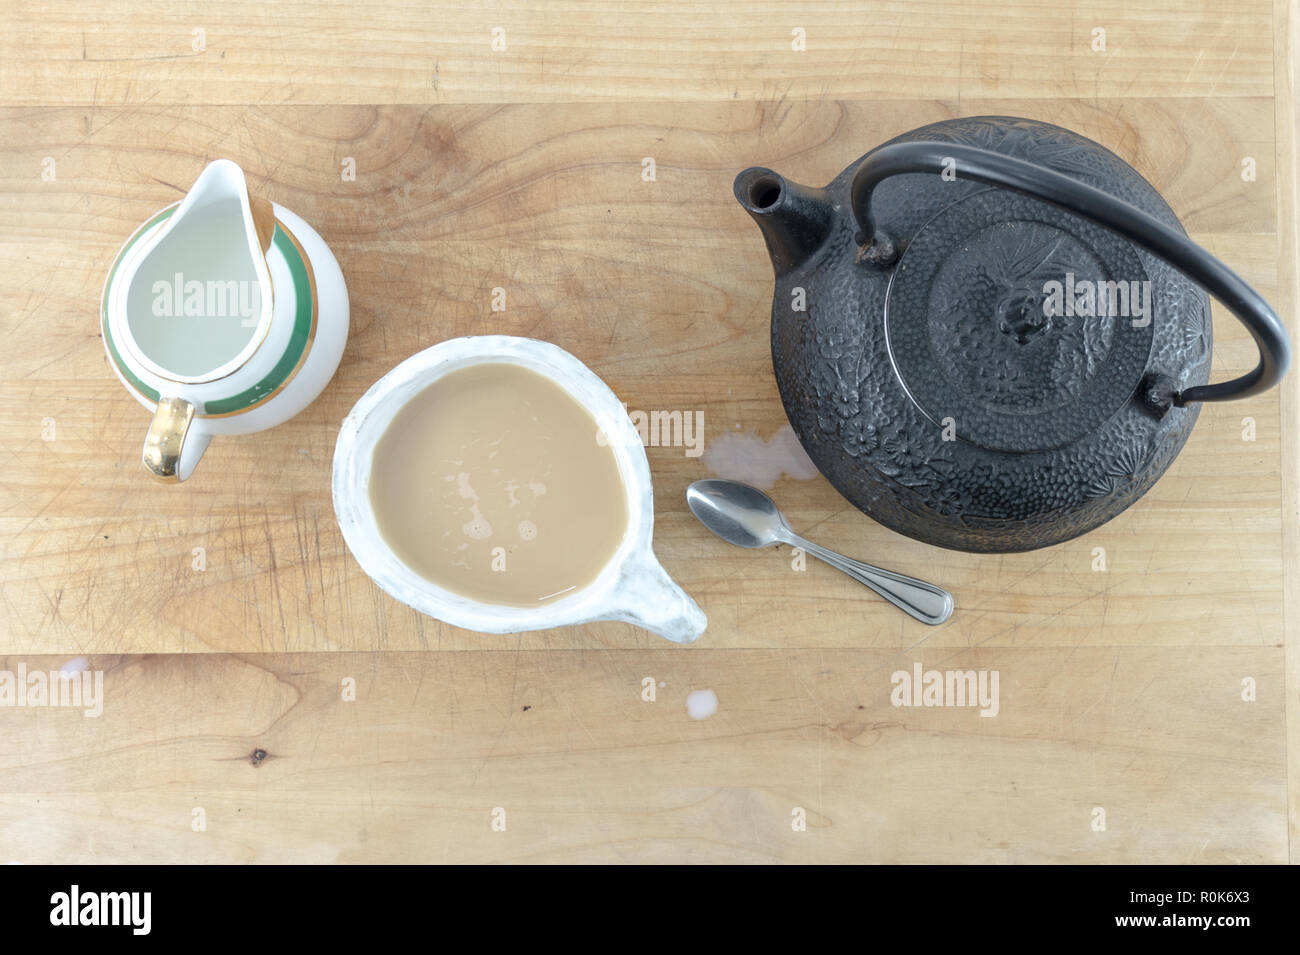 Top view of Black cast iron tea pot with warm cup of tea and pitcher of cream and spoon on a wooden table or tray. - Stock Image